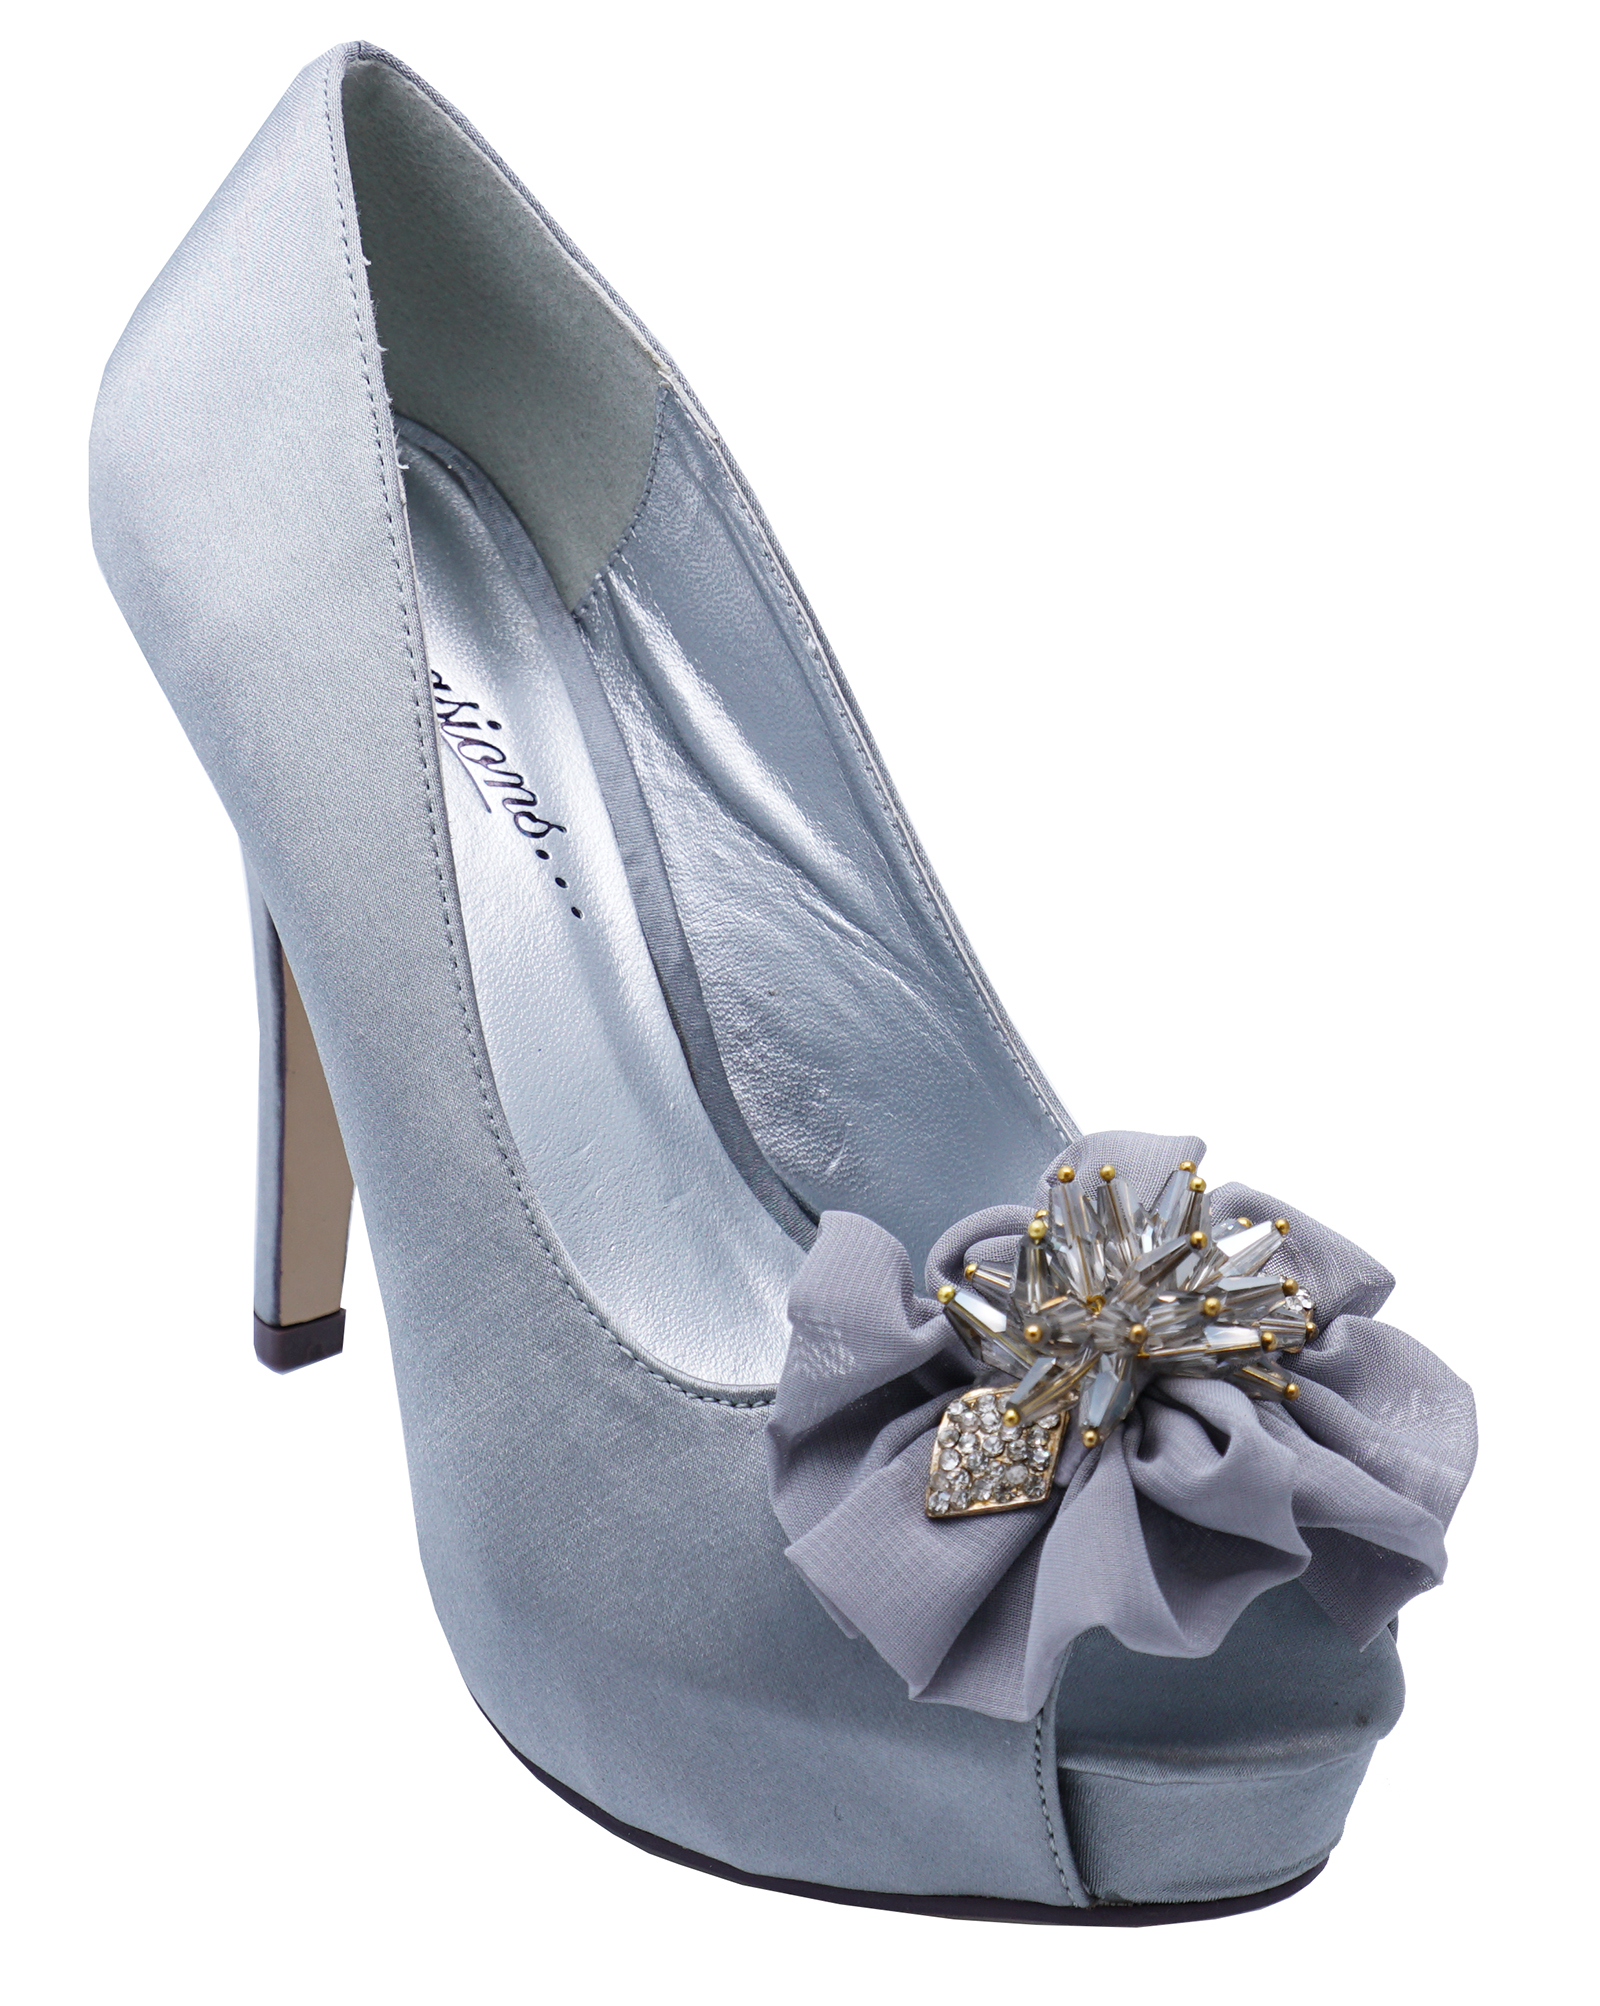 2d711162d0fb Sentinel WOMENS SILVER SATIN OPEN-TOE WEDDING PARTY BRIDESMAID PROM SHOES  SIZES 3-8